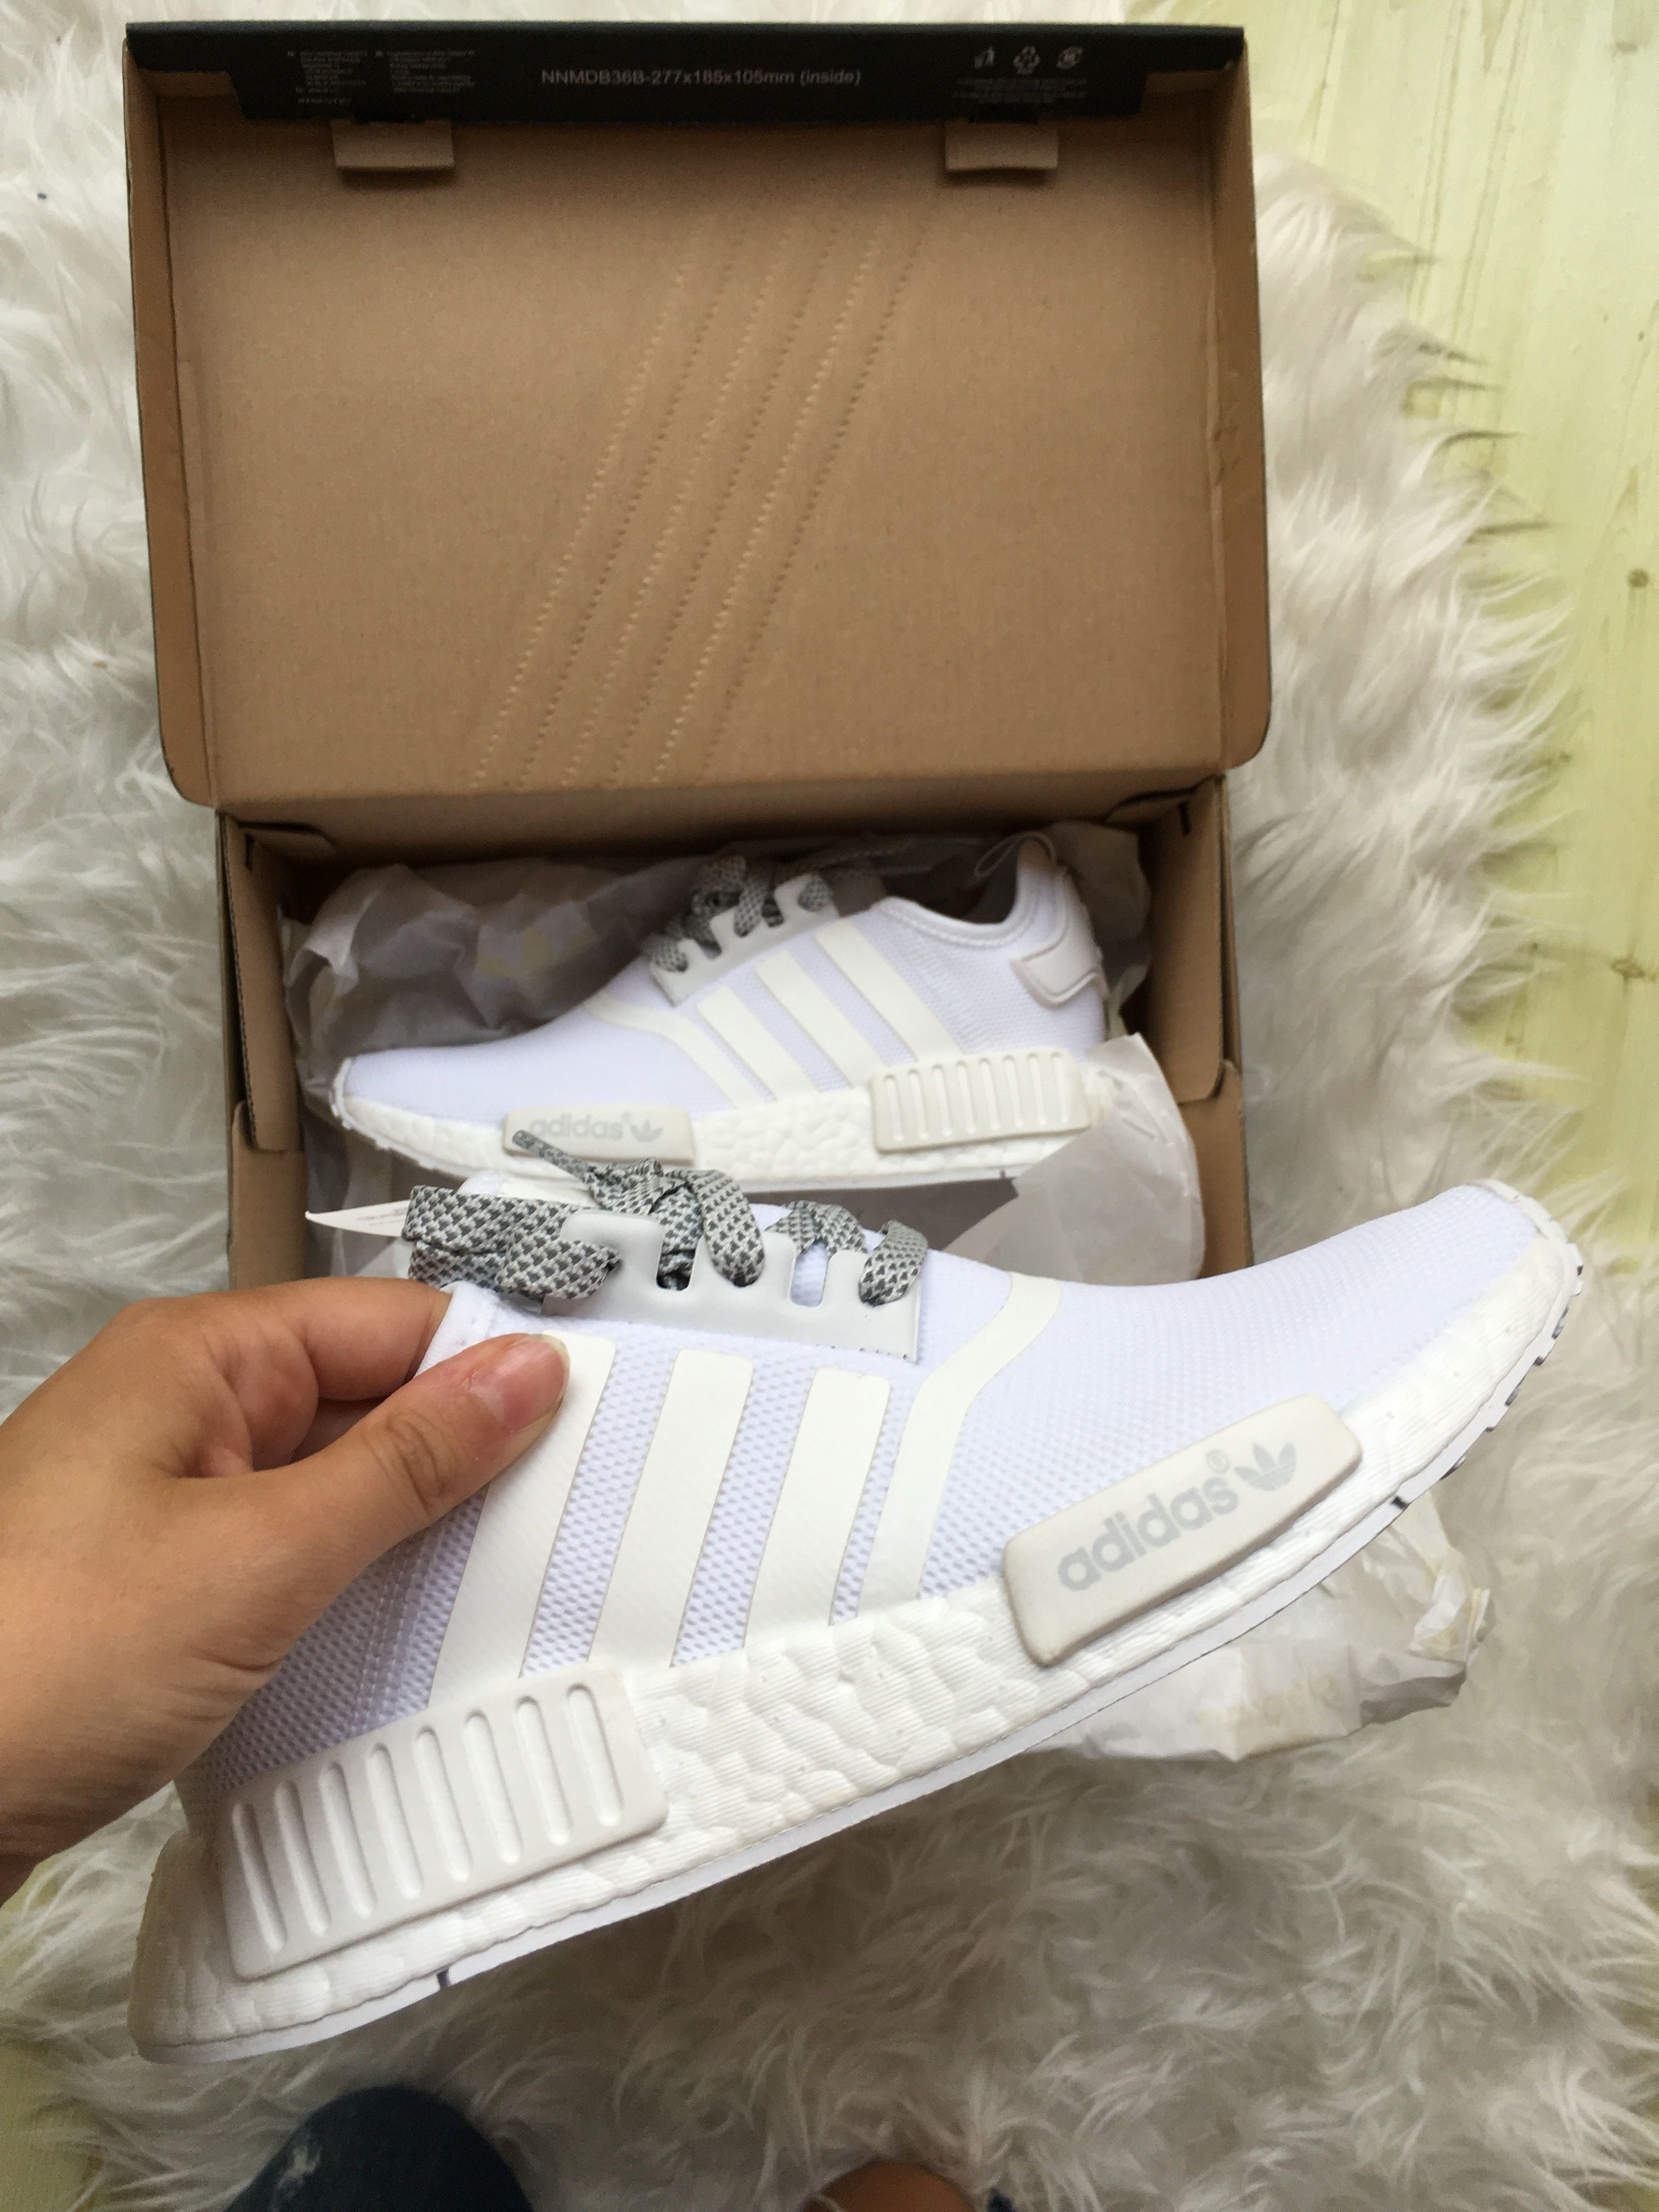 Unboxing my adidas Nmd triple white aus dem reflective pack